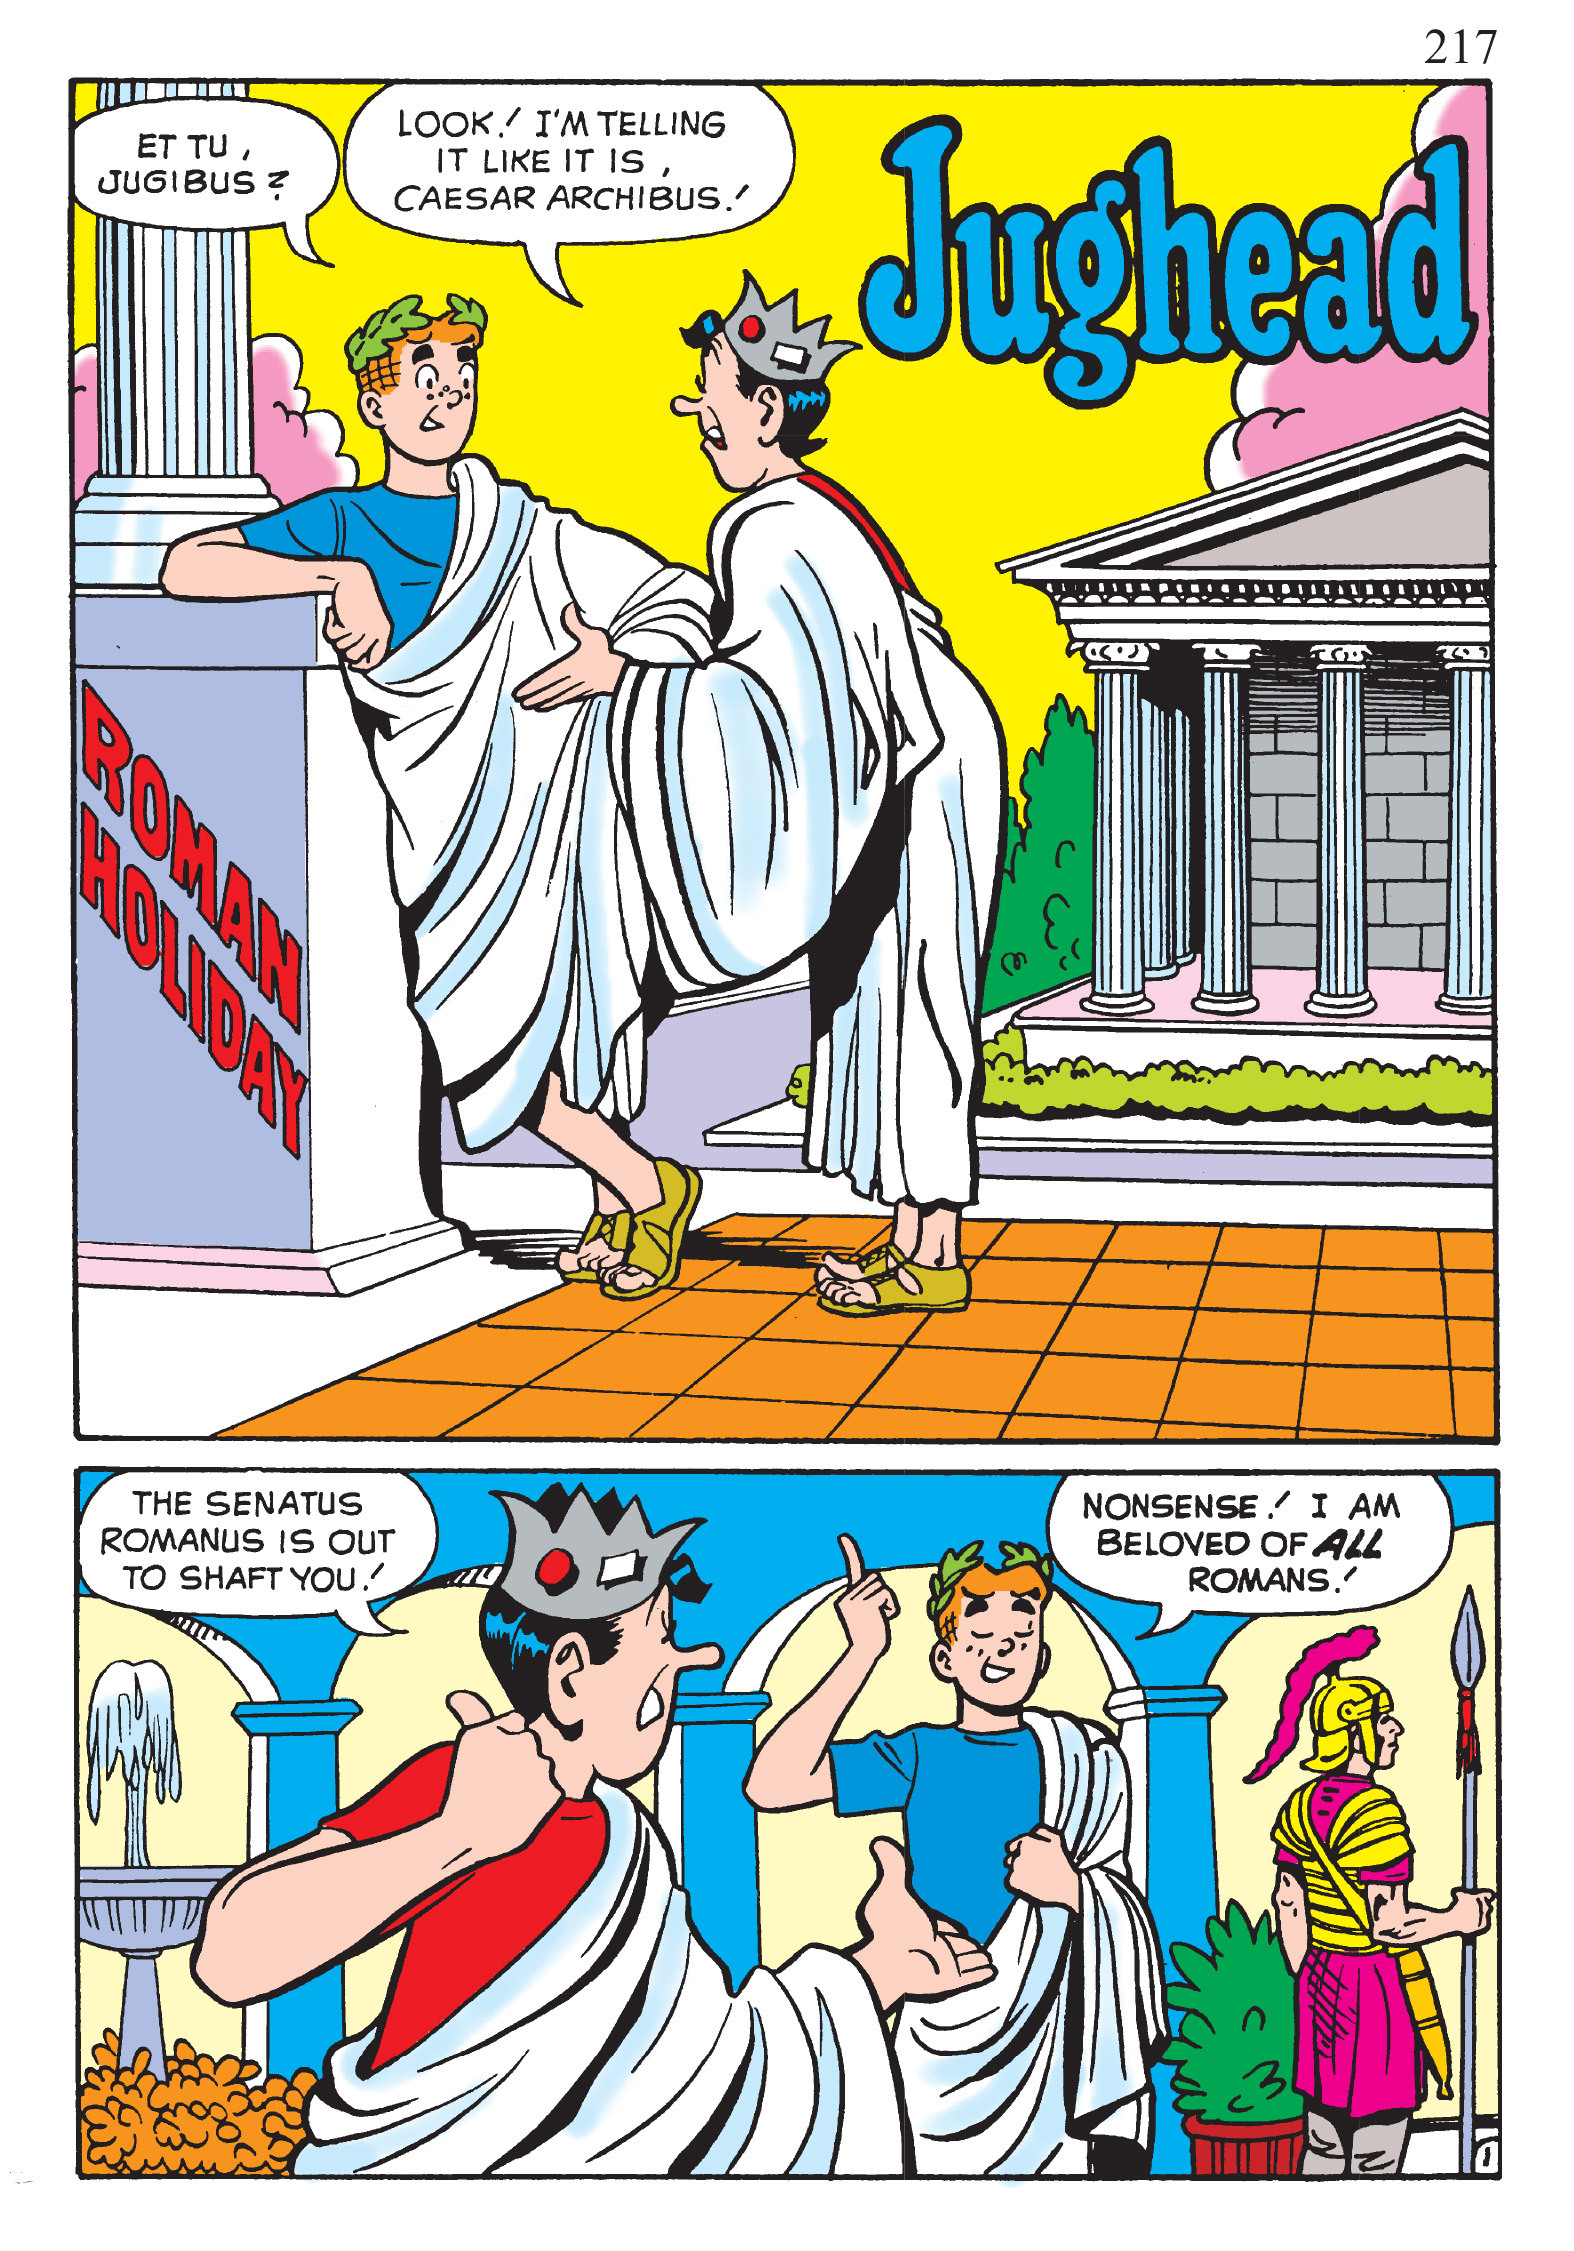 Read online The Best of Archie Comics comic -  Issue # TPB 2 (Part 1) - 219